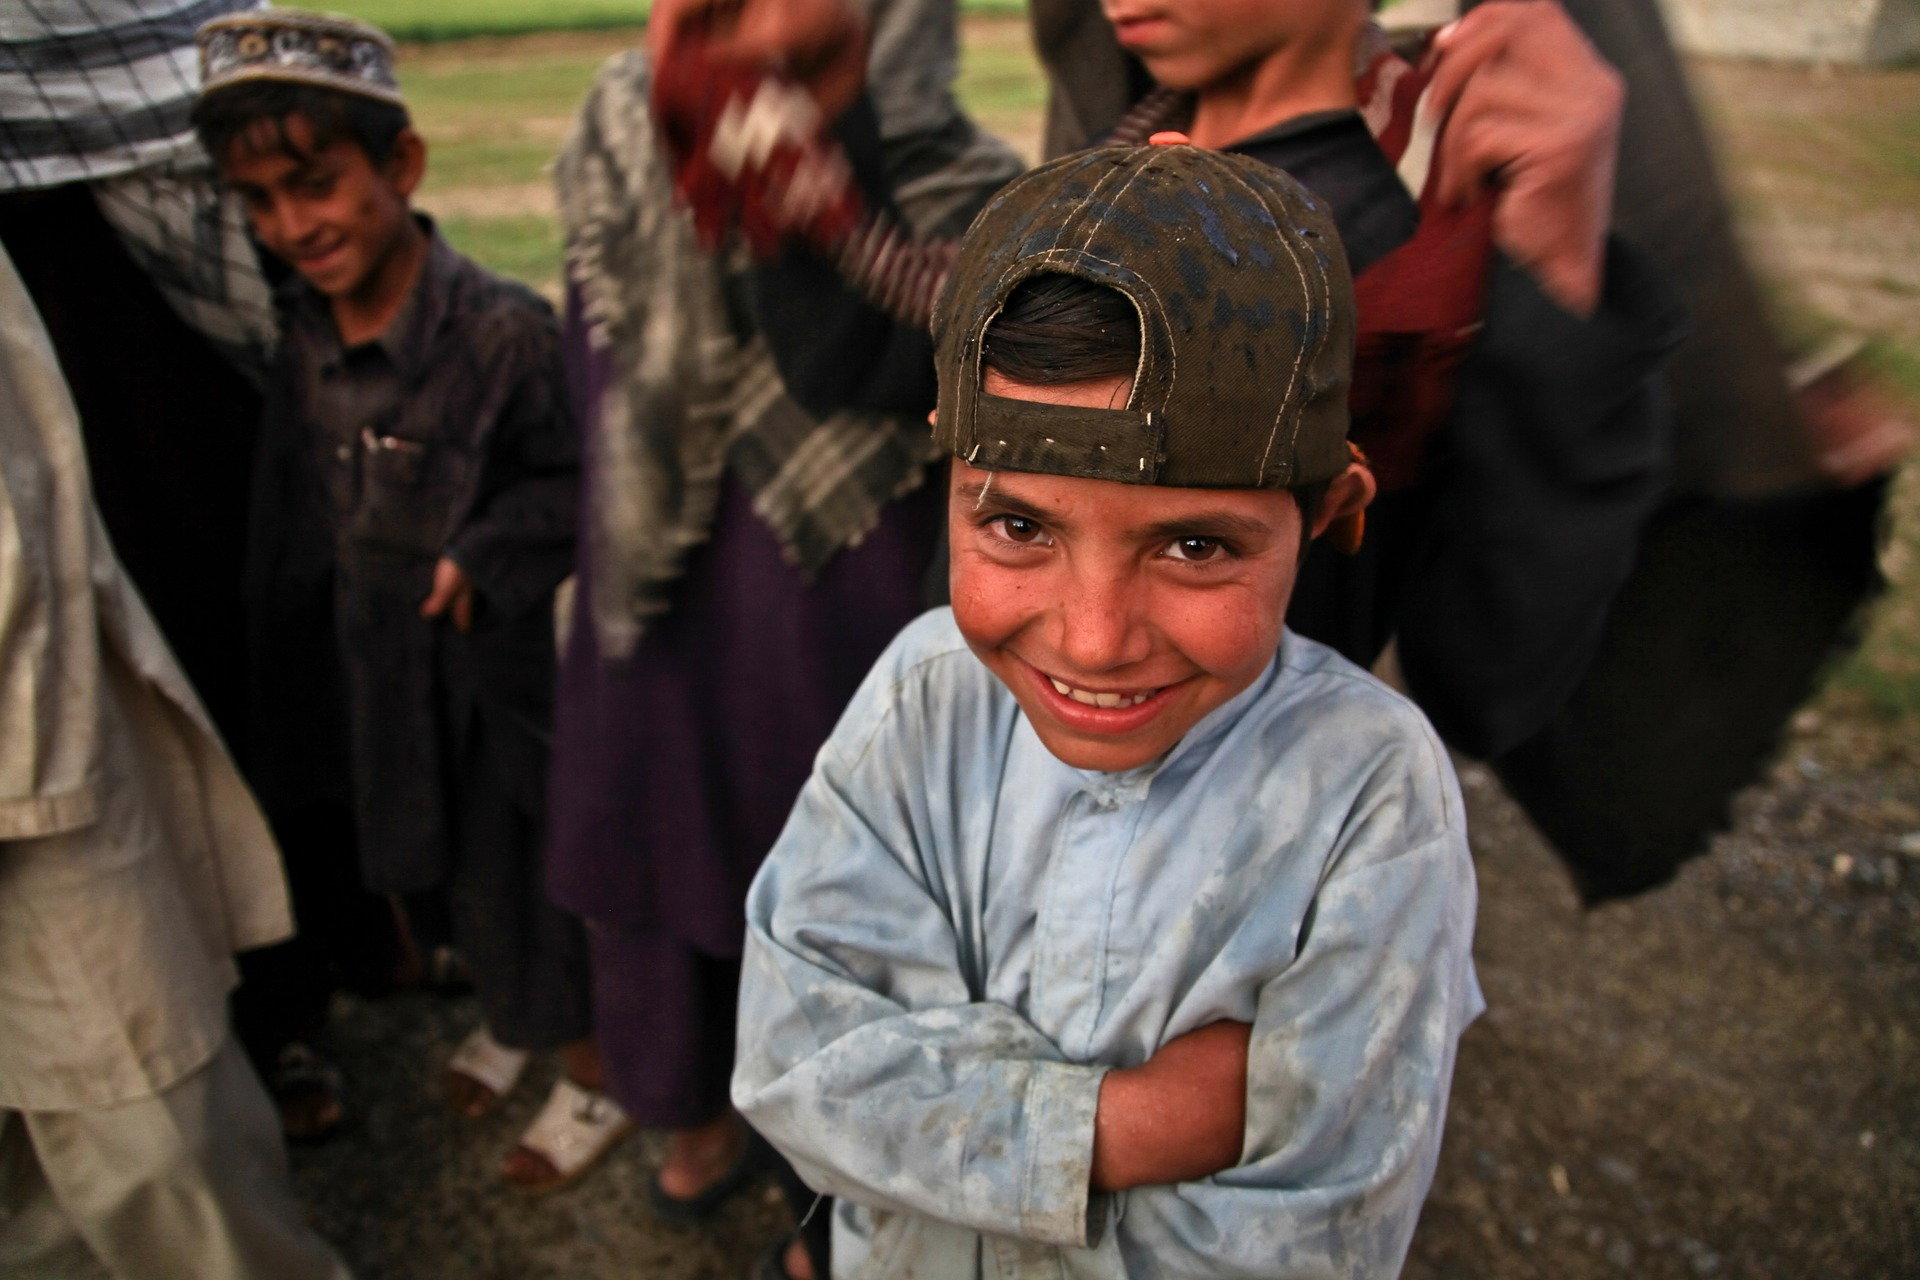 Impoverished young Afghani boy smiling